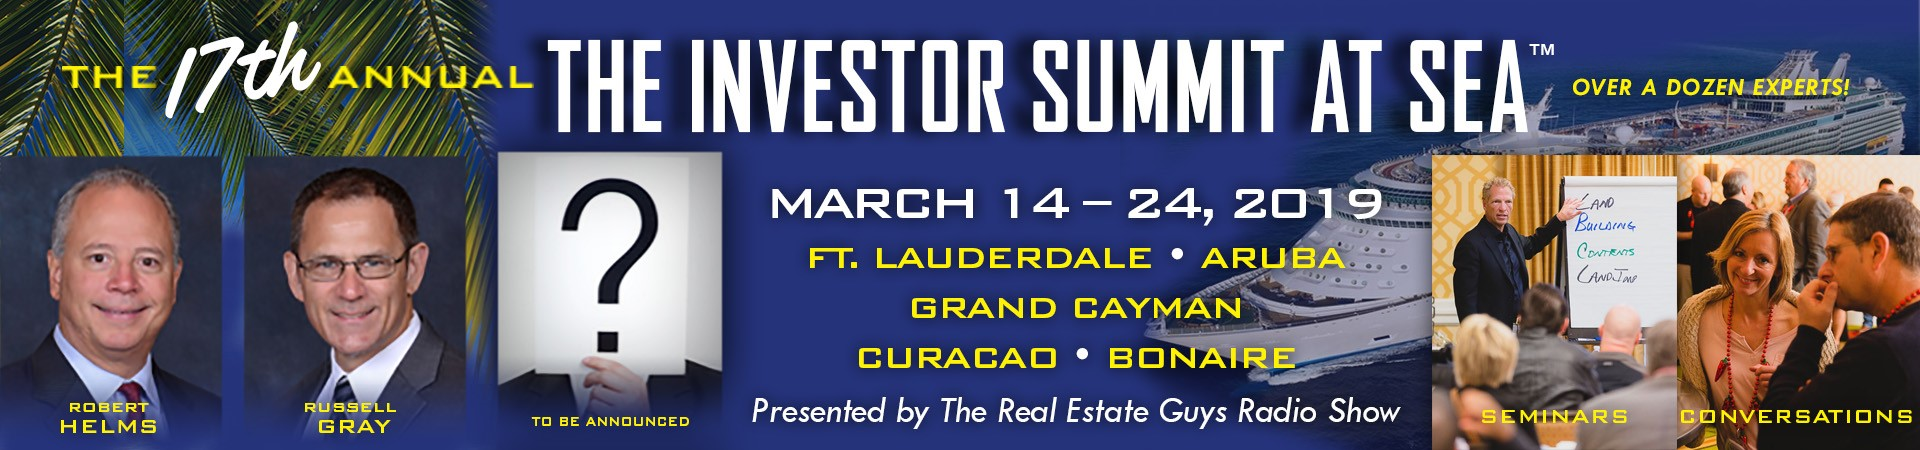 The Real Estate Guys Investor Summit at Sea is an investment conference on a cruise ship